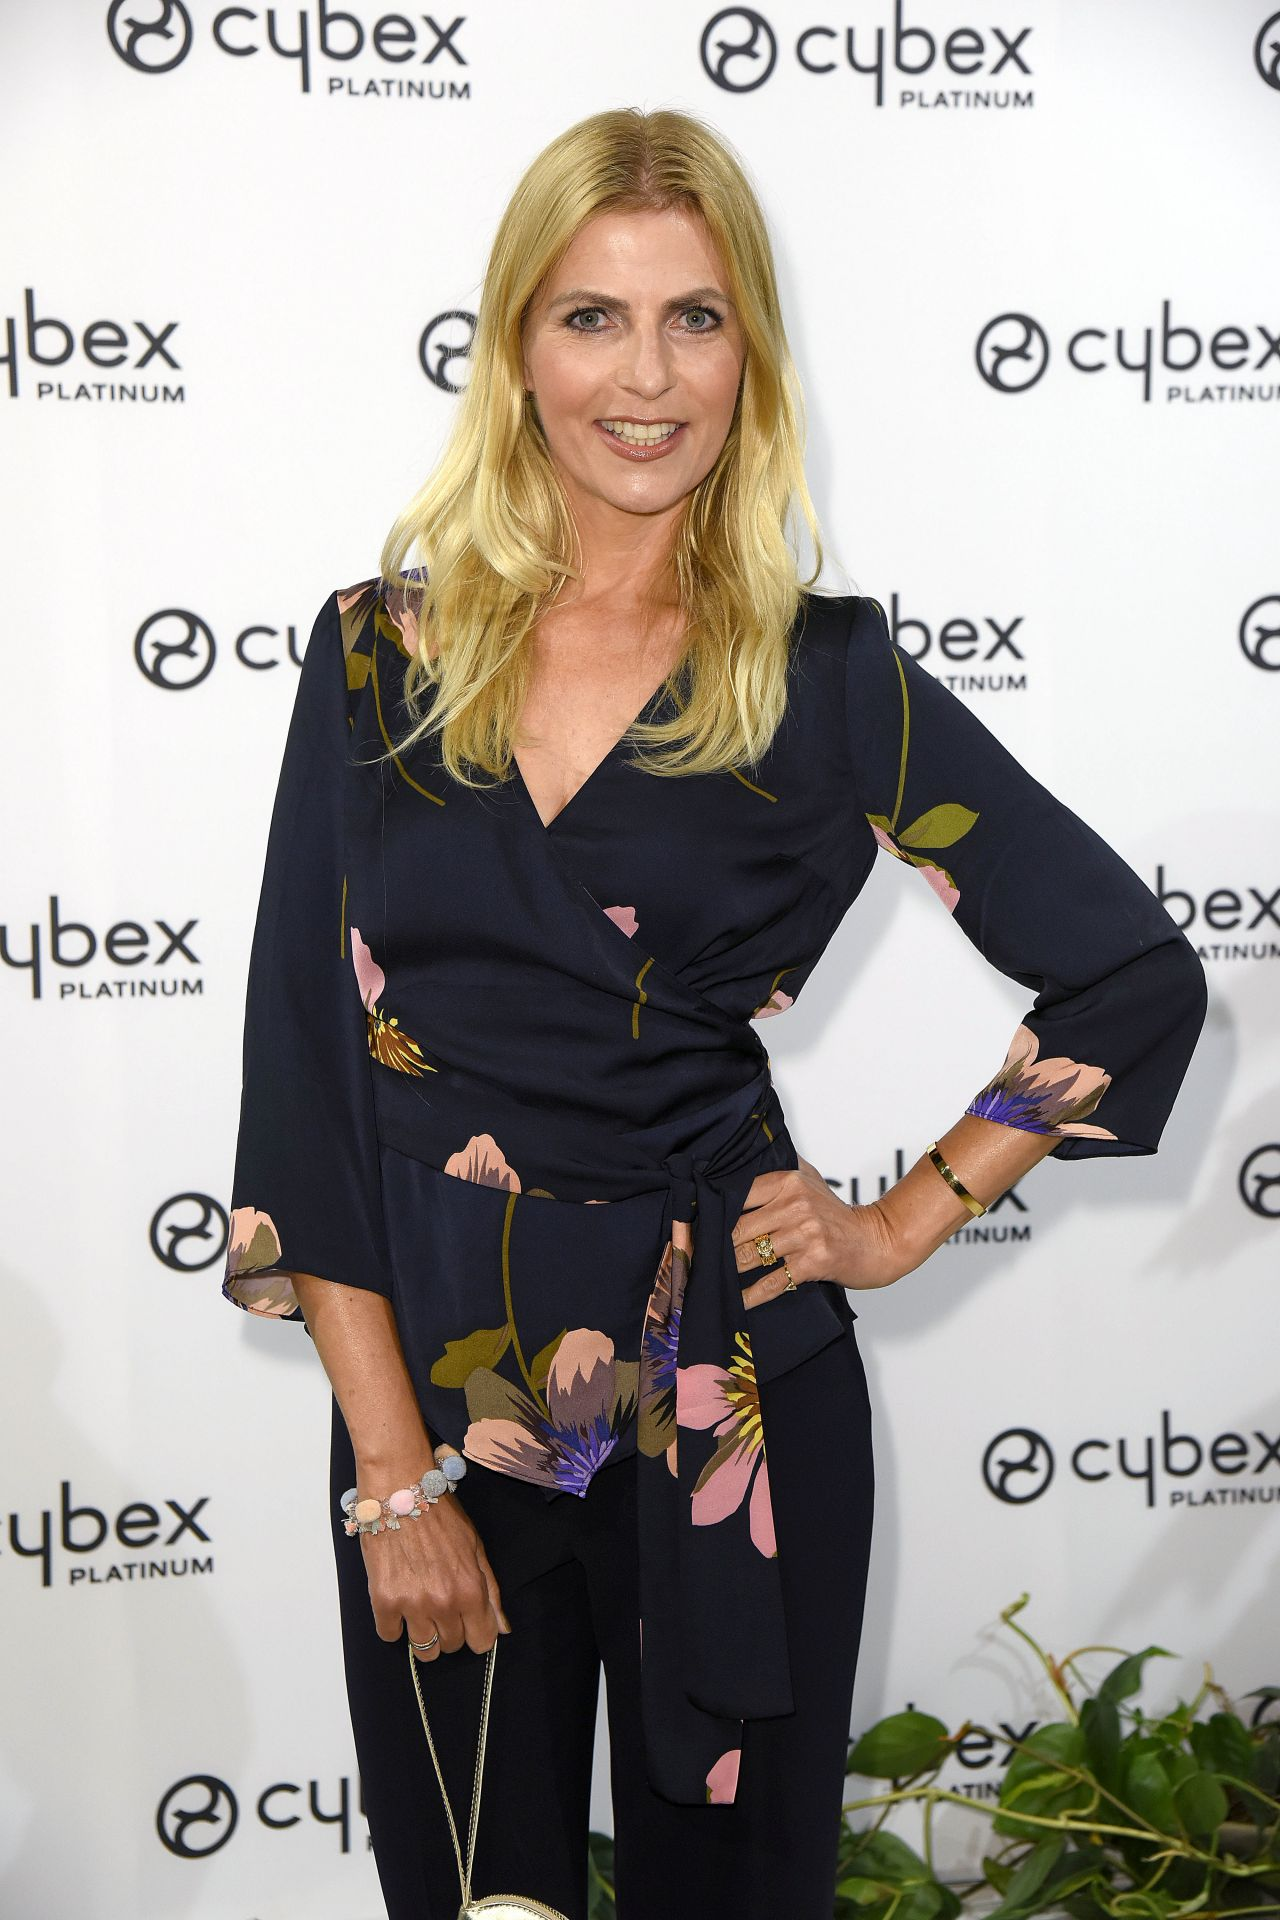 Ulrike beck cybex fashion cocktail in berlin nude (45 pics)